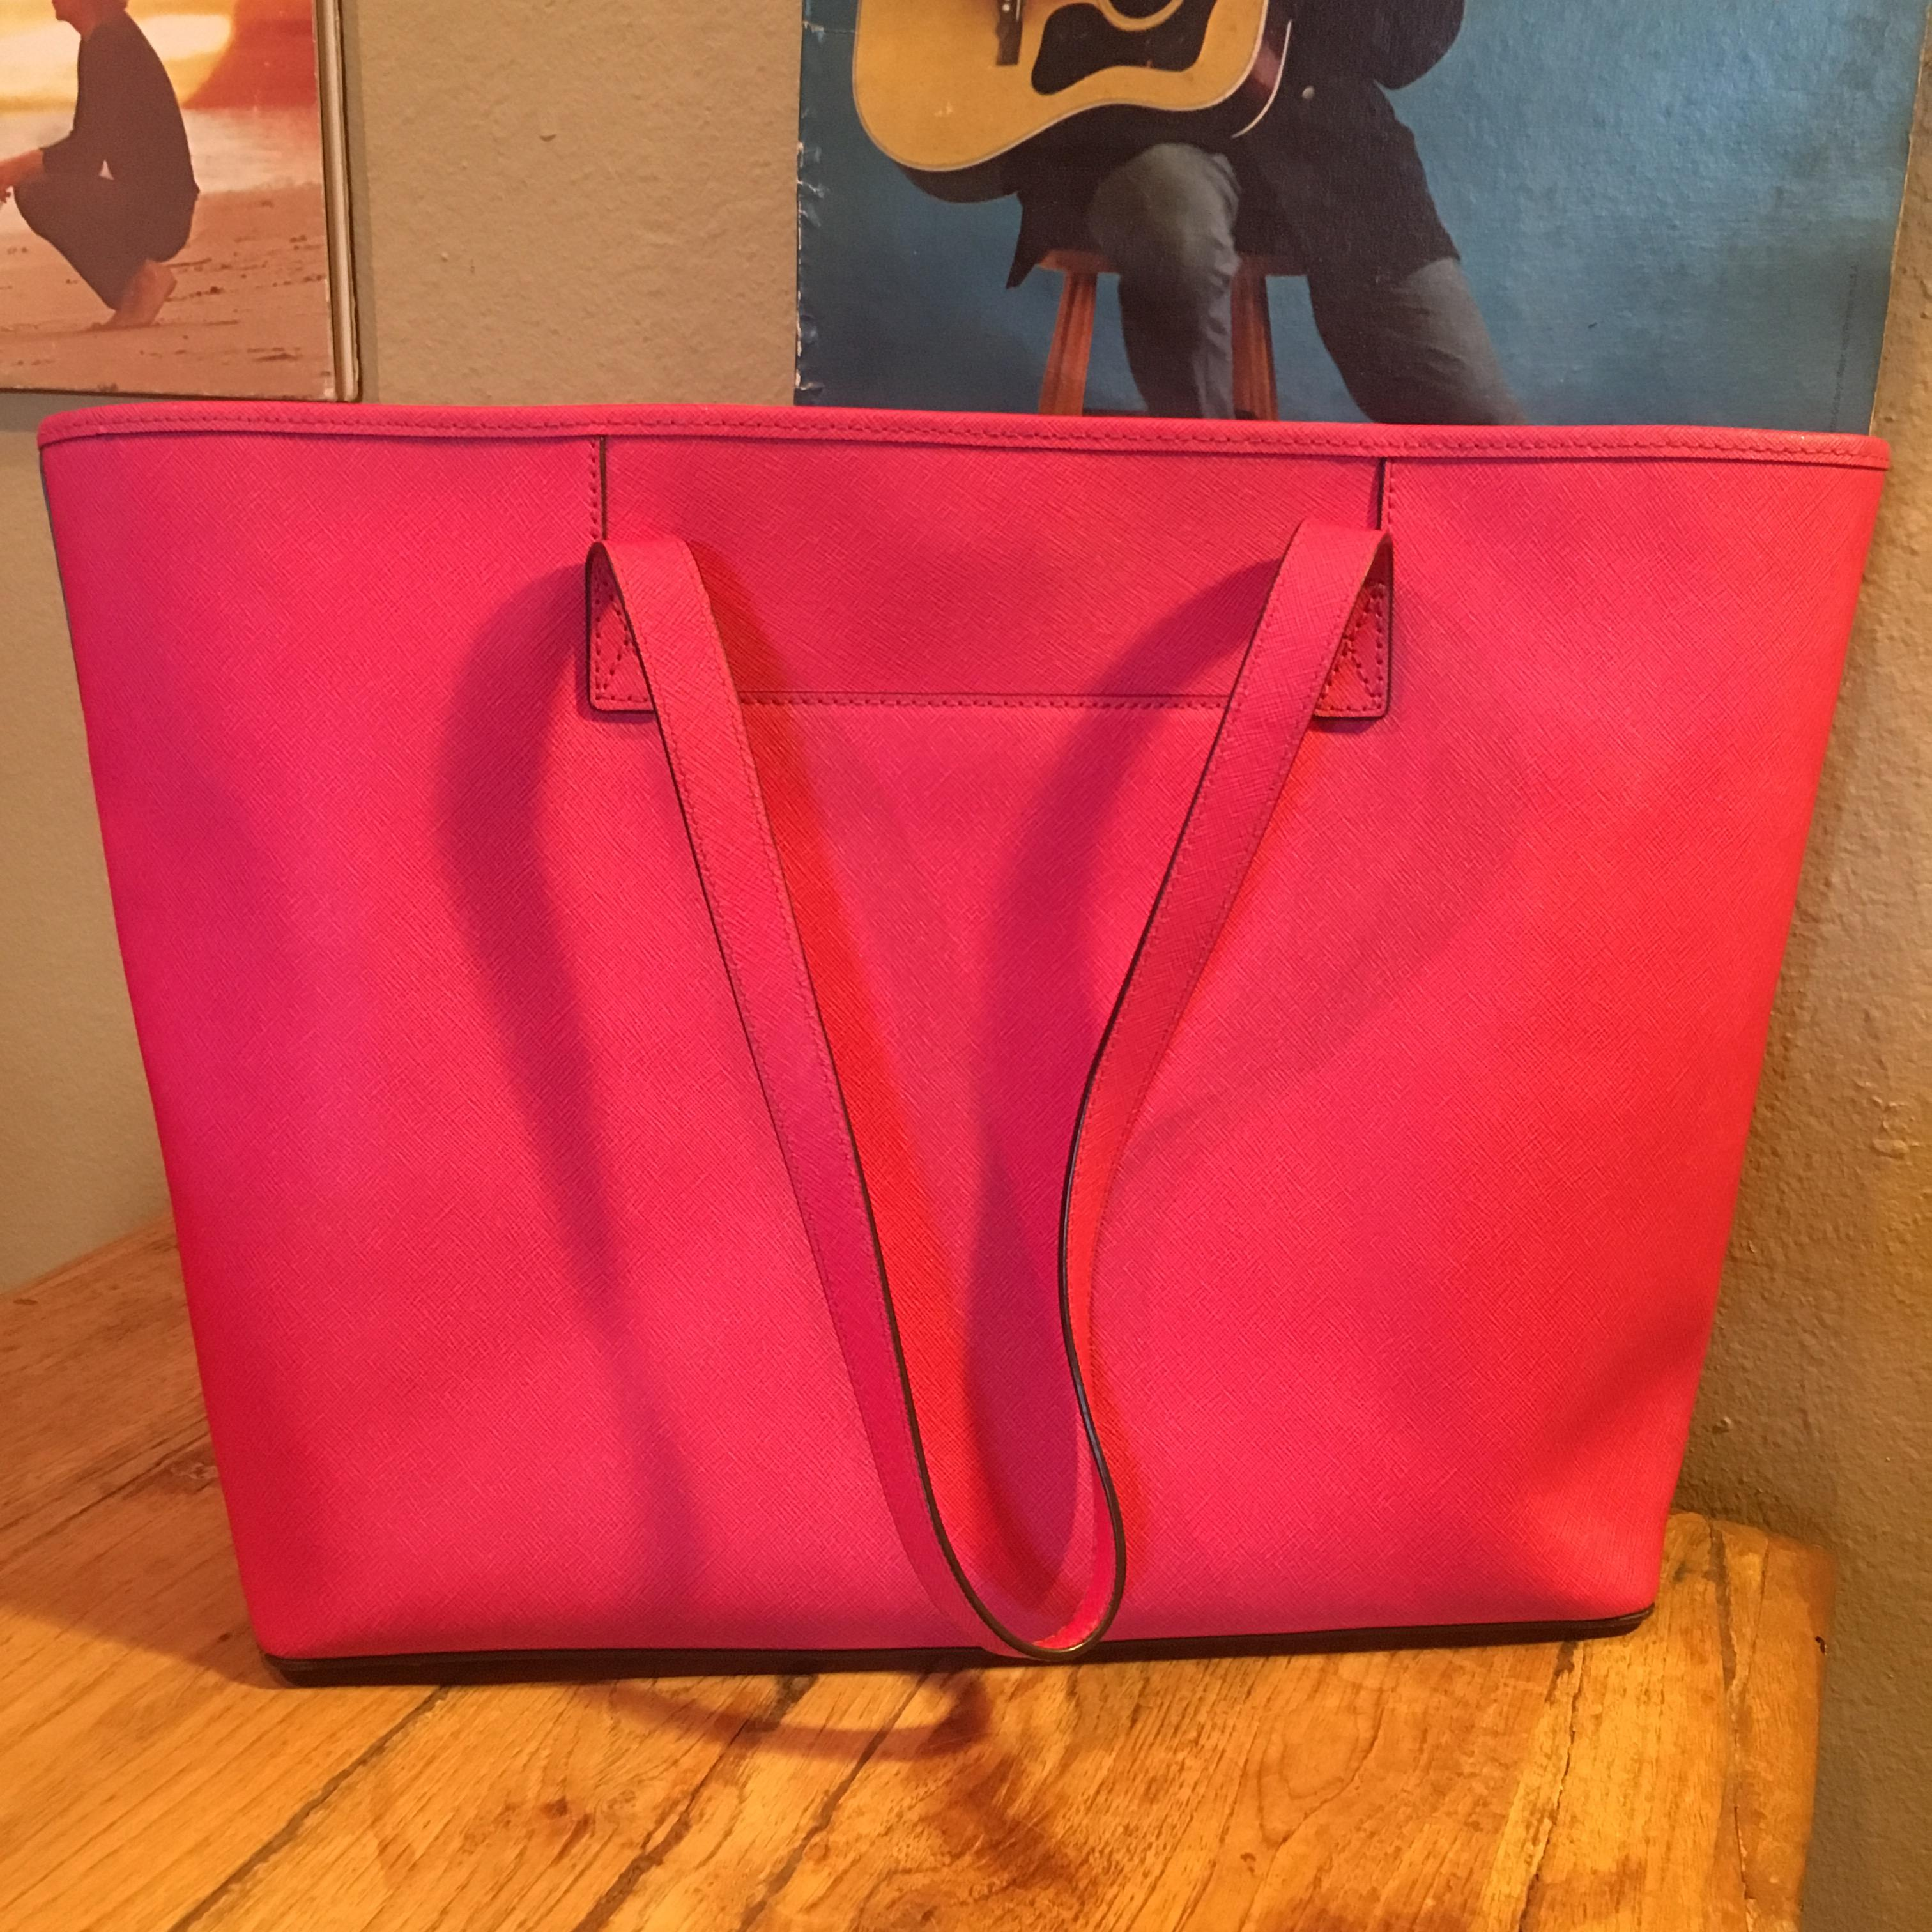 0082d386fe5af8 Buy michael kors laptop tote red > OFF65% Discounted